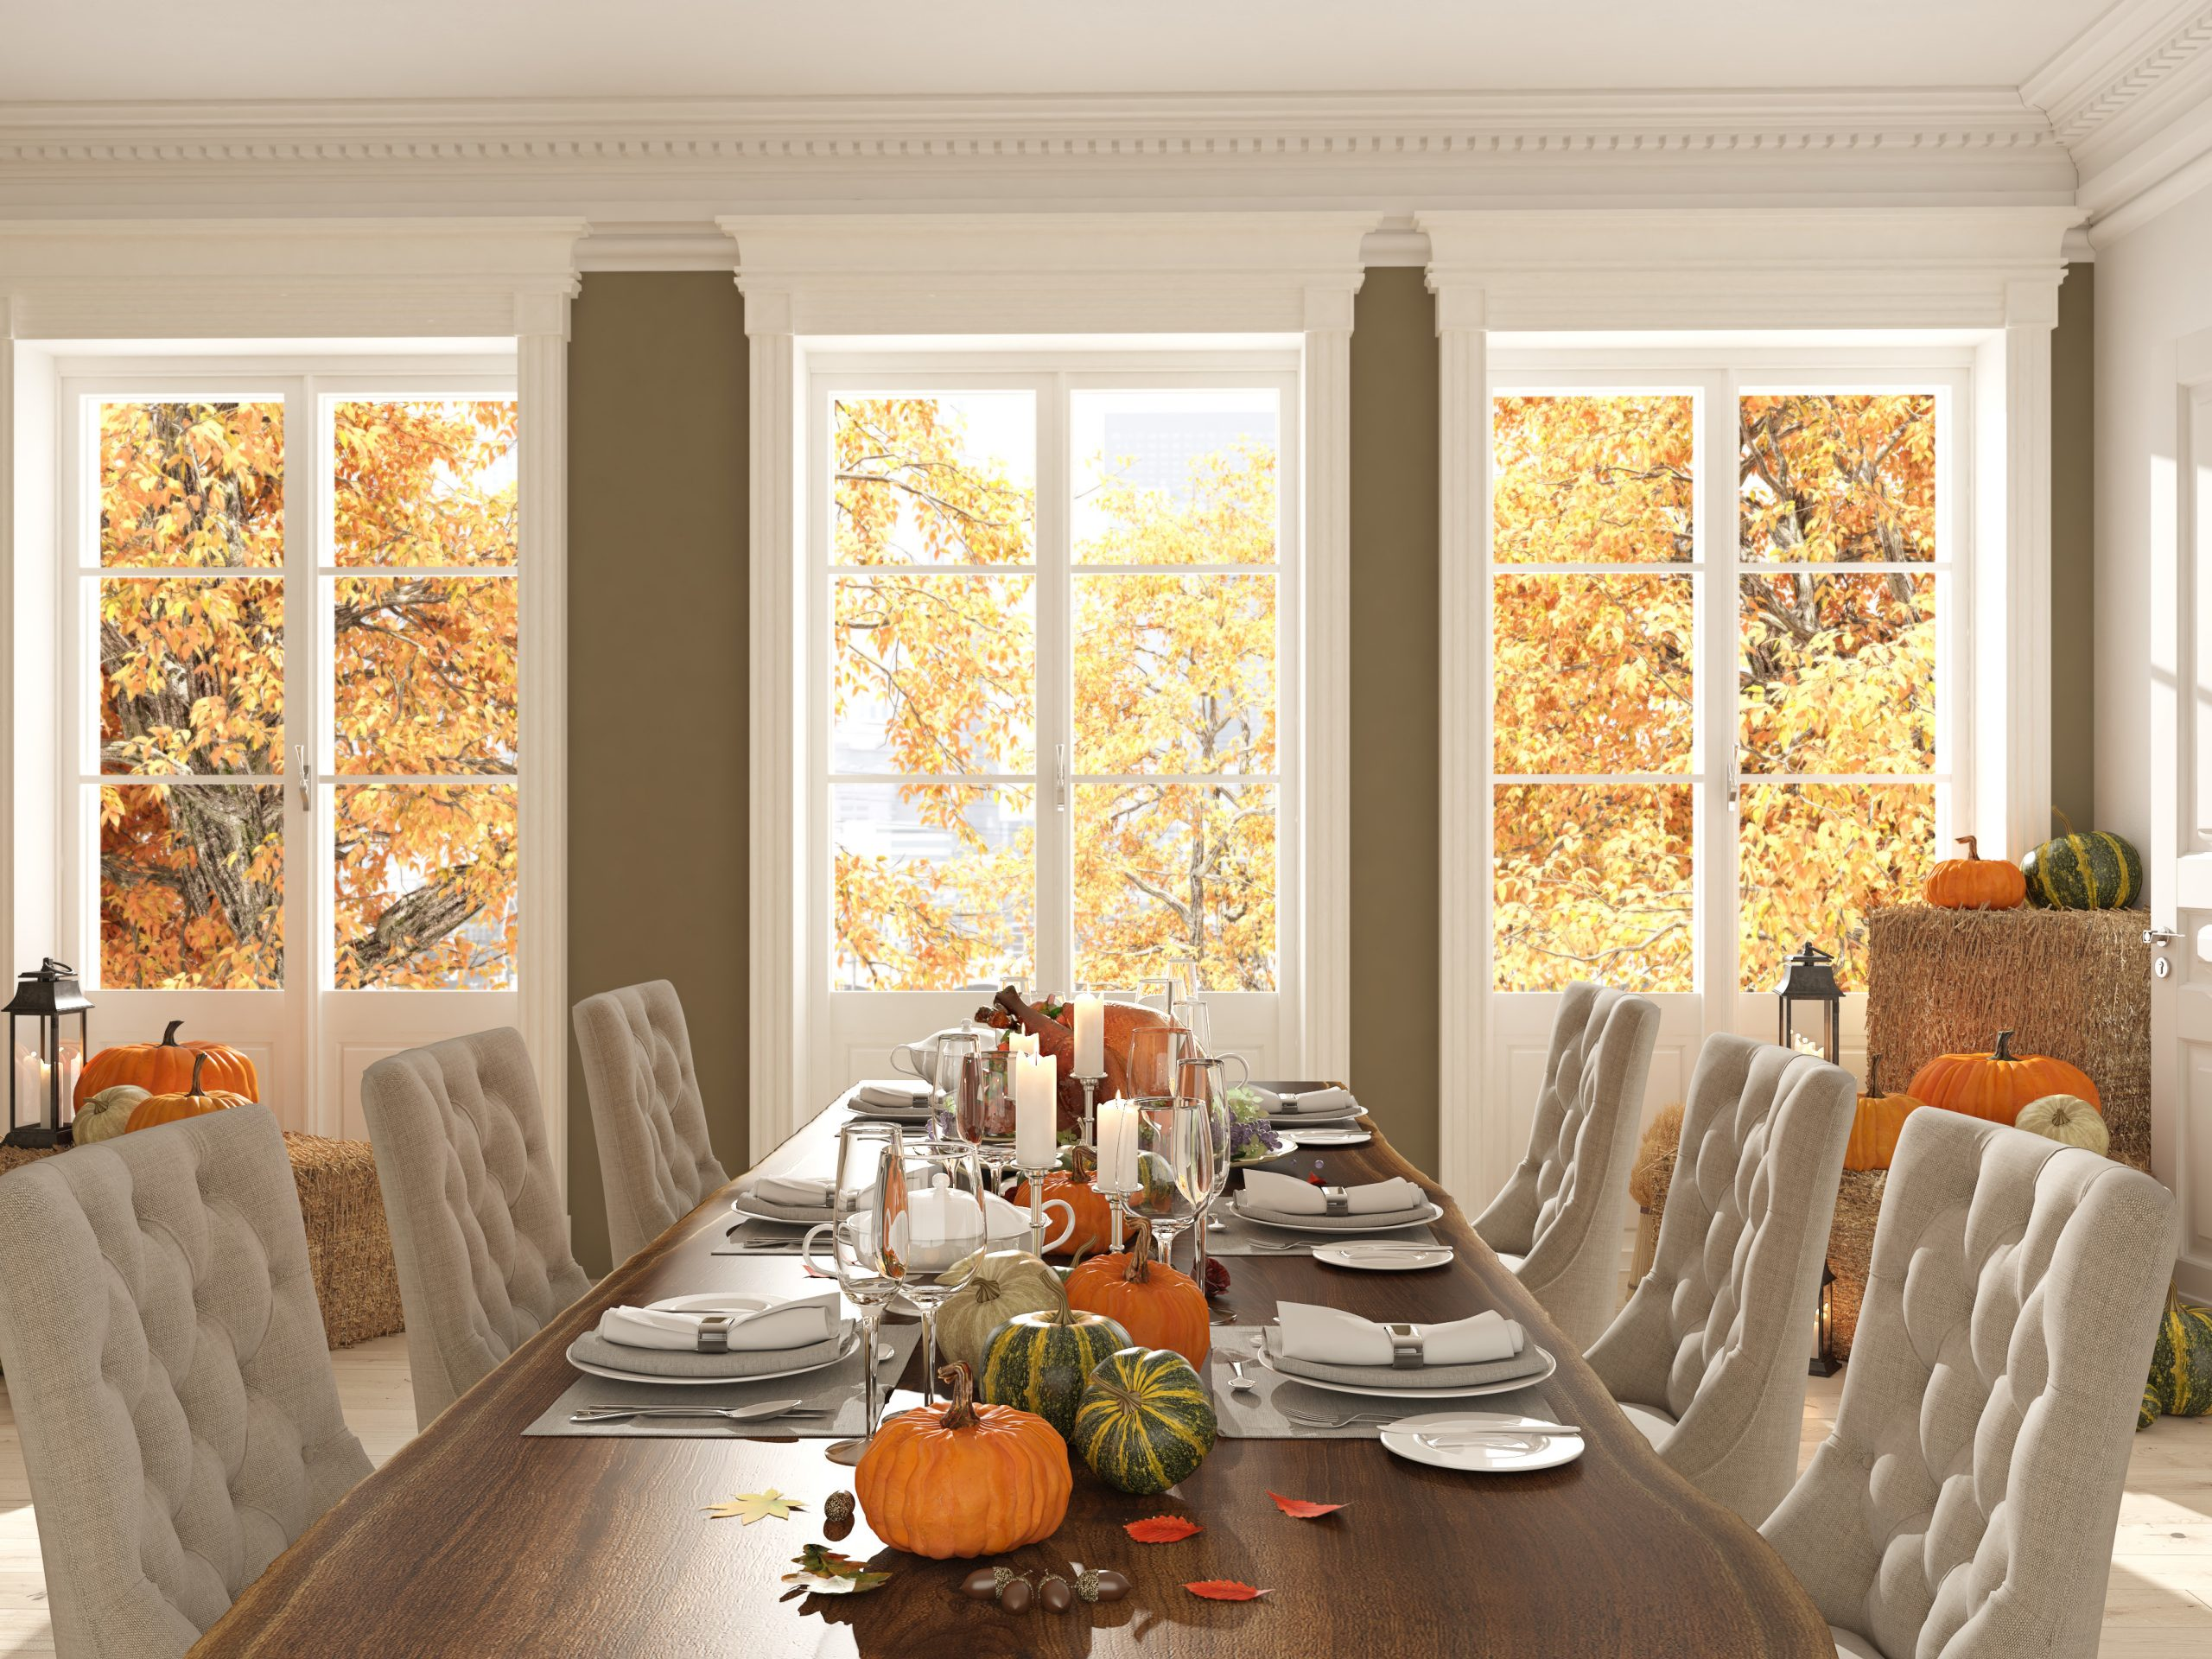 5 Tips for Hosting Thanksgiving in Your New Home